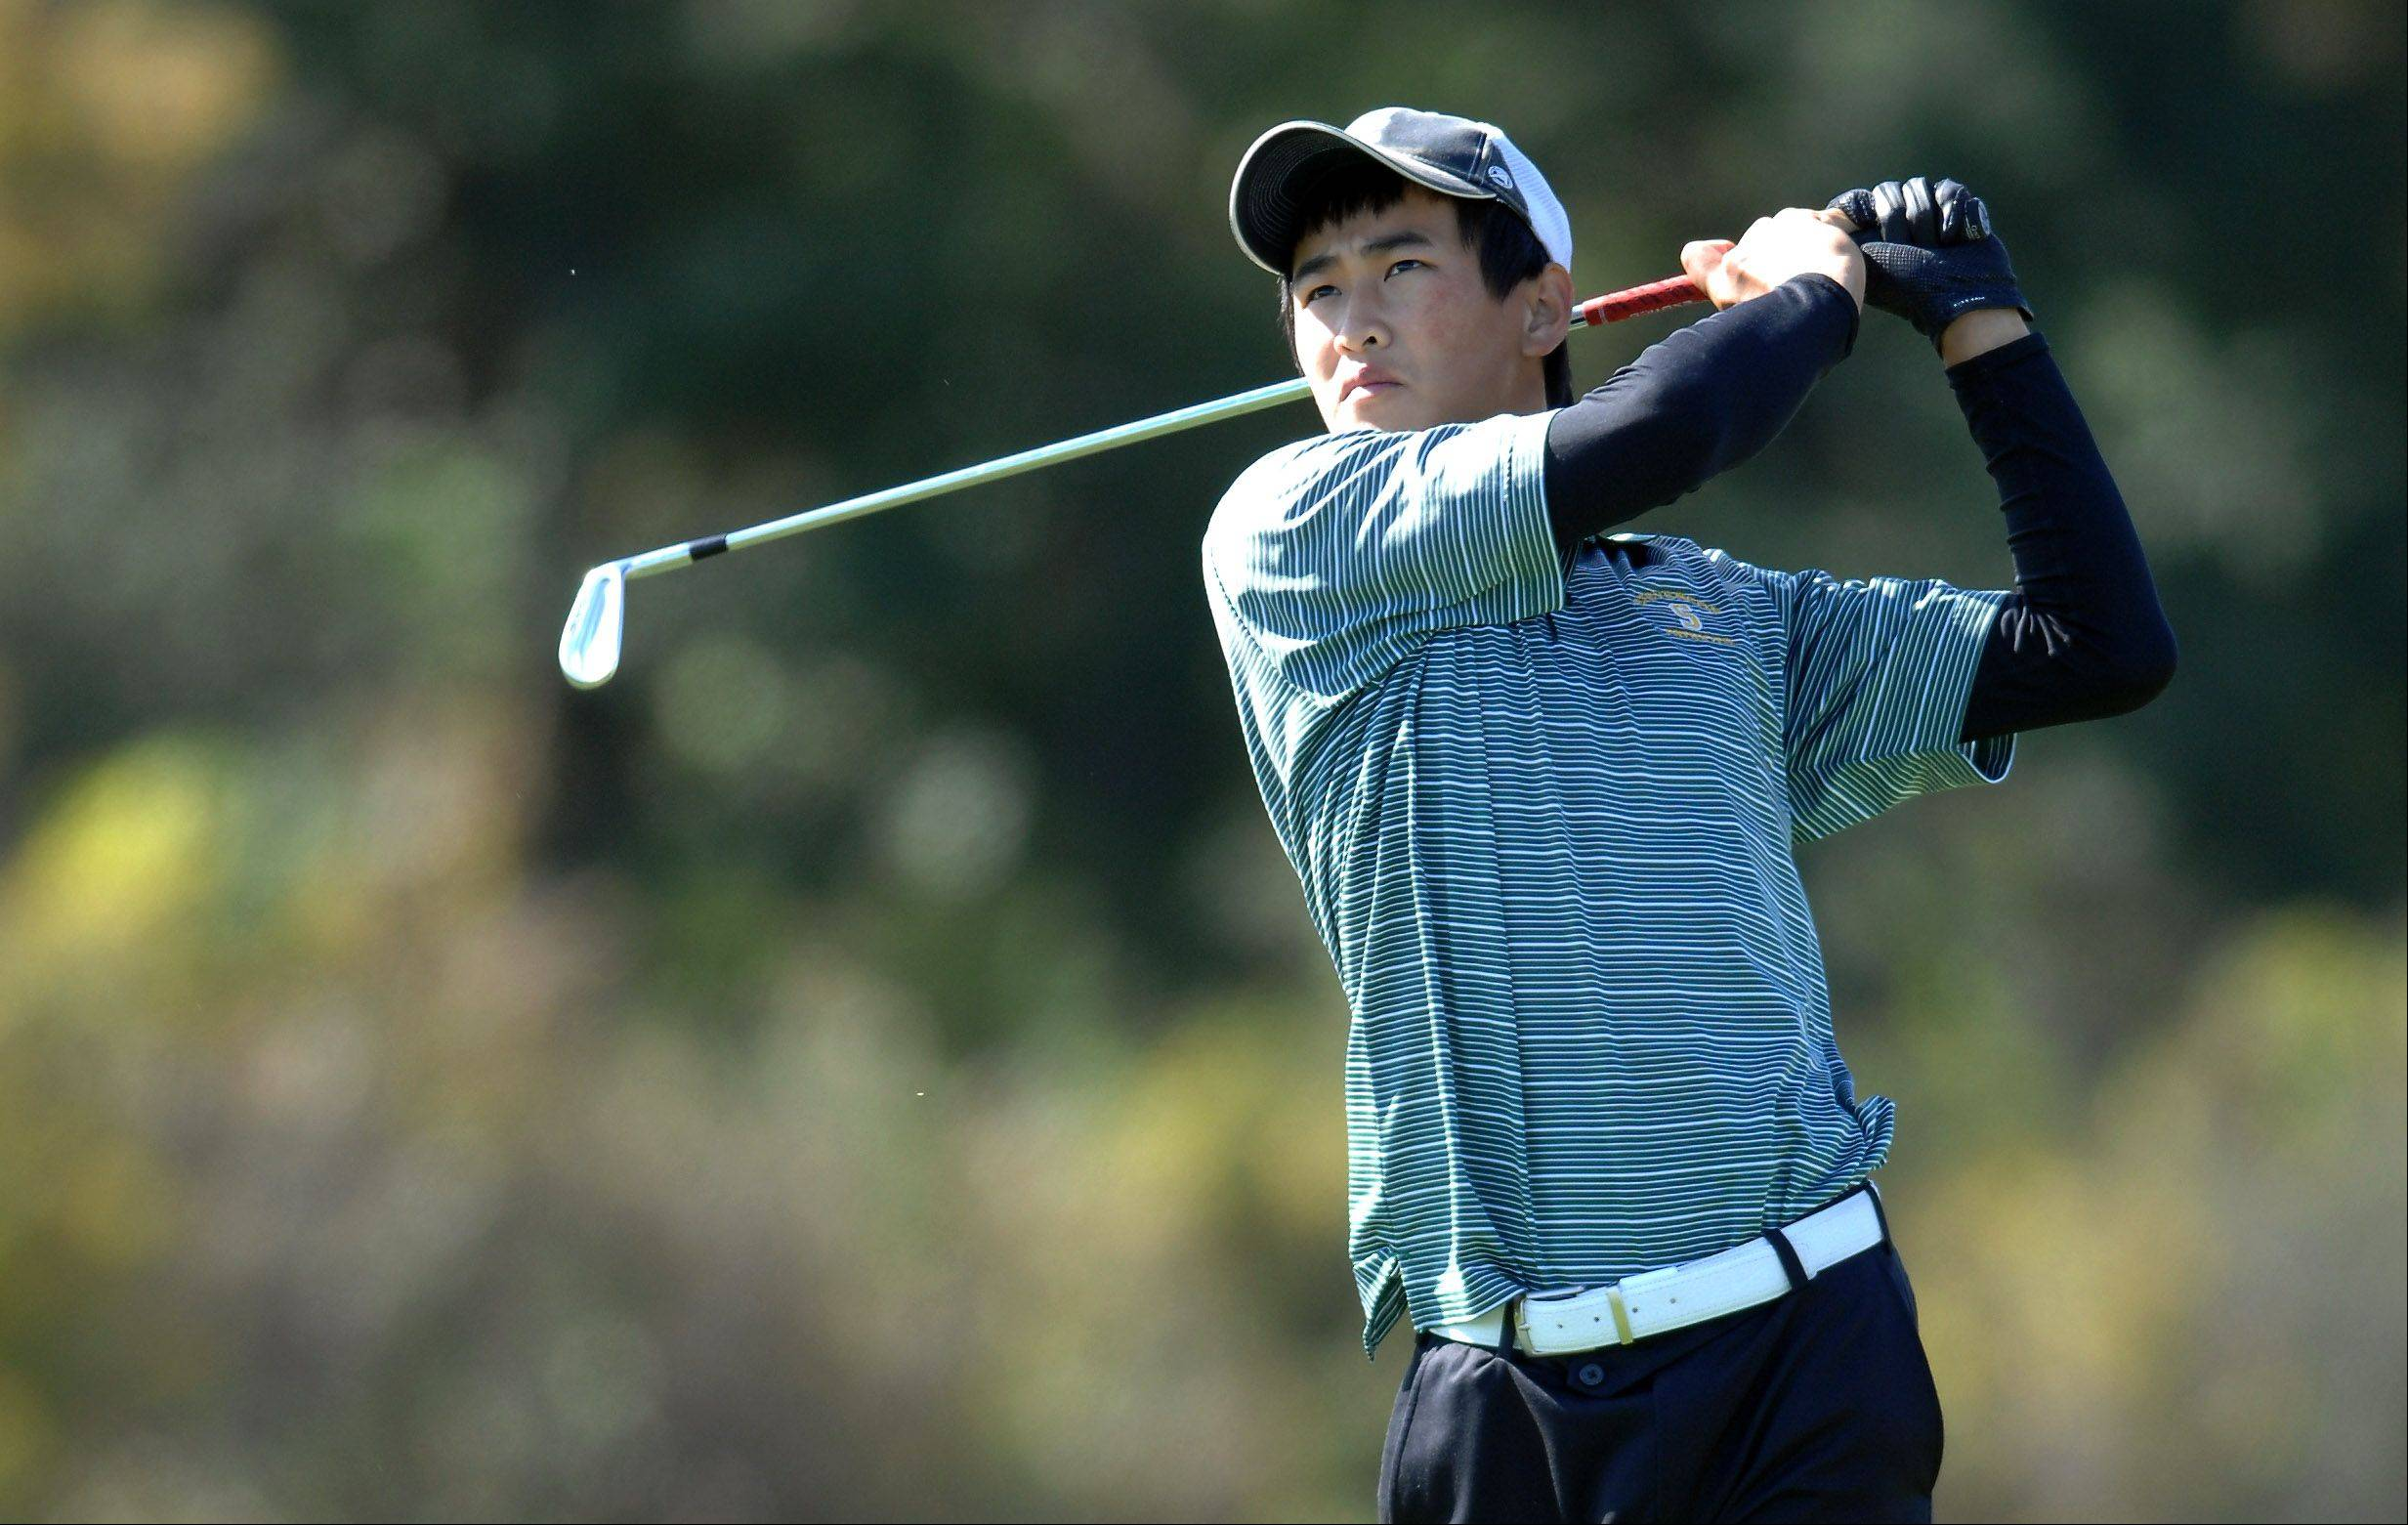 Jerry Pan of Stevenson hits during the Huntley boys golf sectional at Blackstone Golf Club in Marengo.